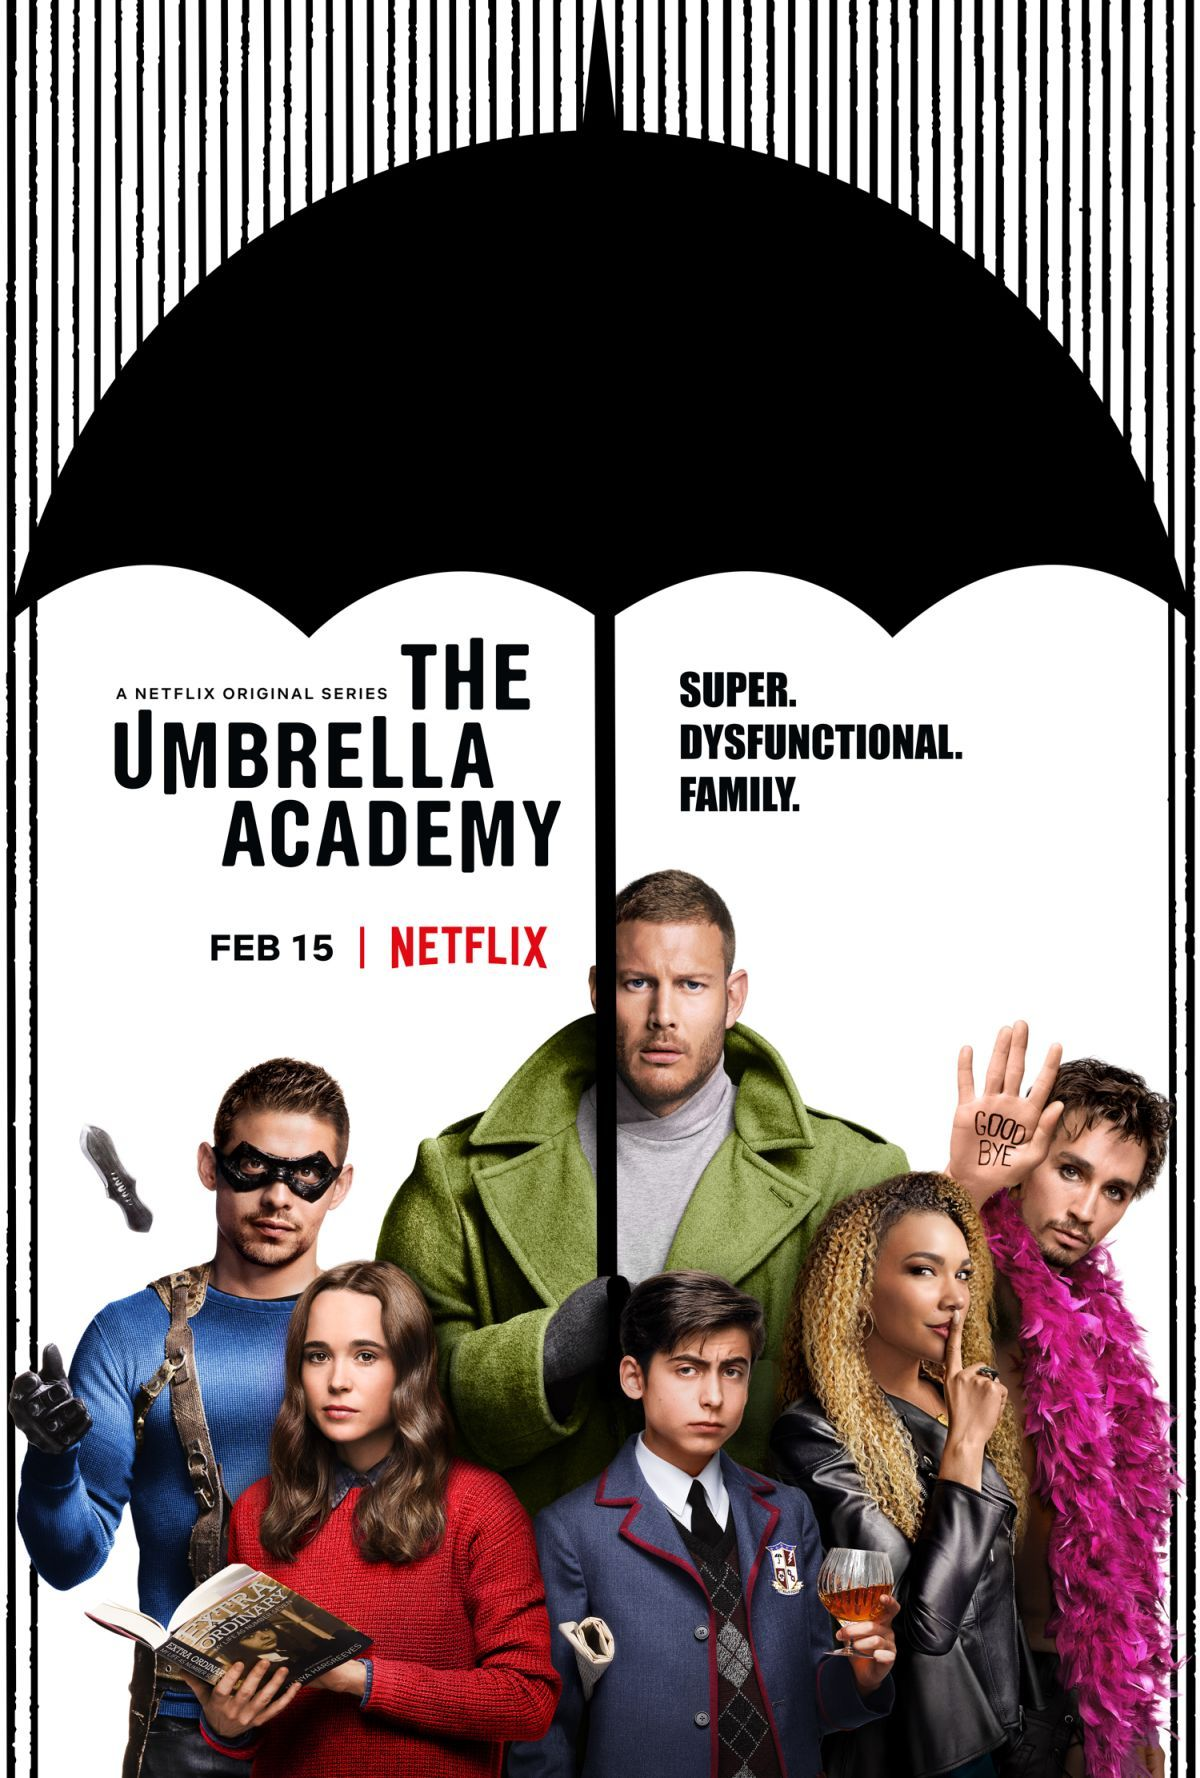 The Umbrella Academy S01 E01 Cut